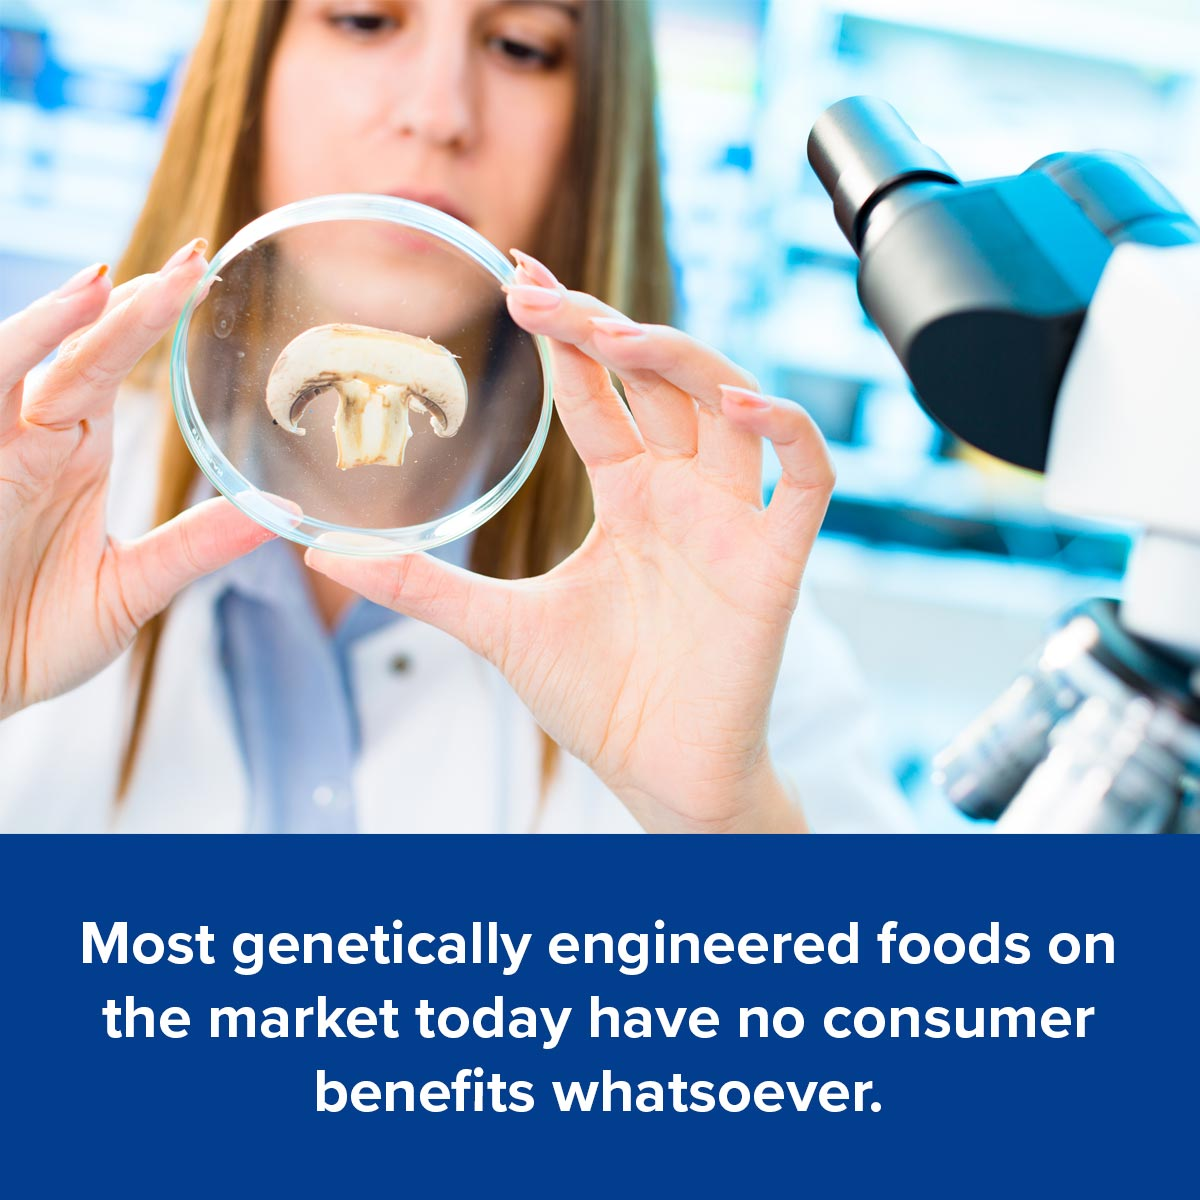 Most genetically engineered foods on the market today have no consumer benefits whatsoever.